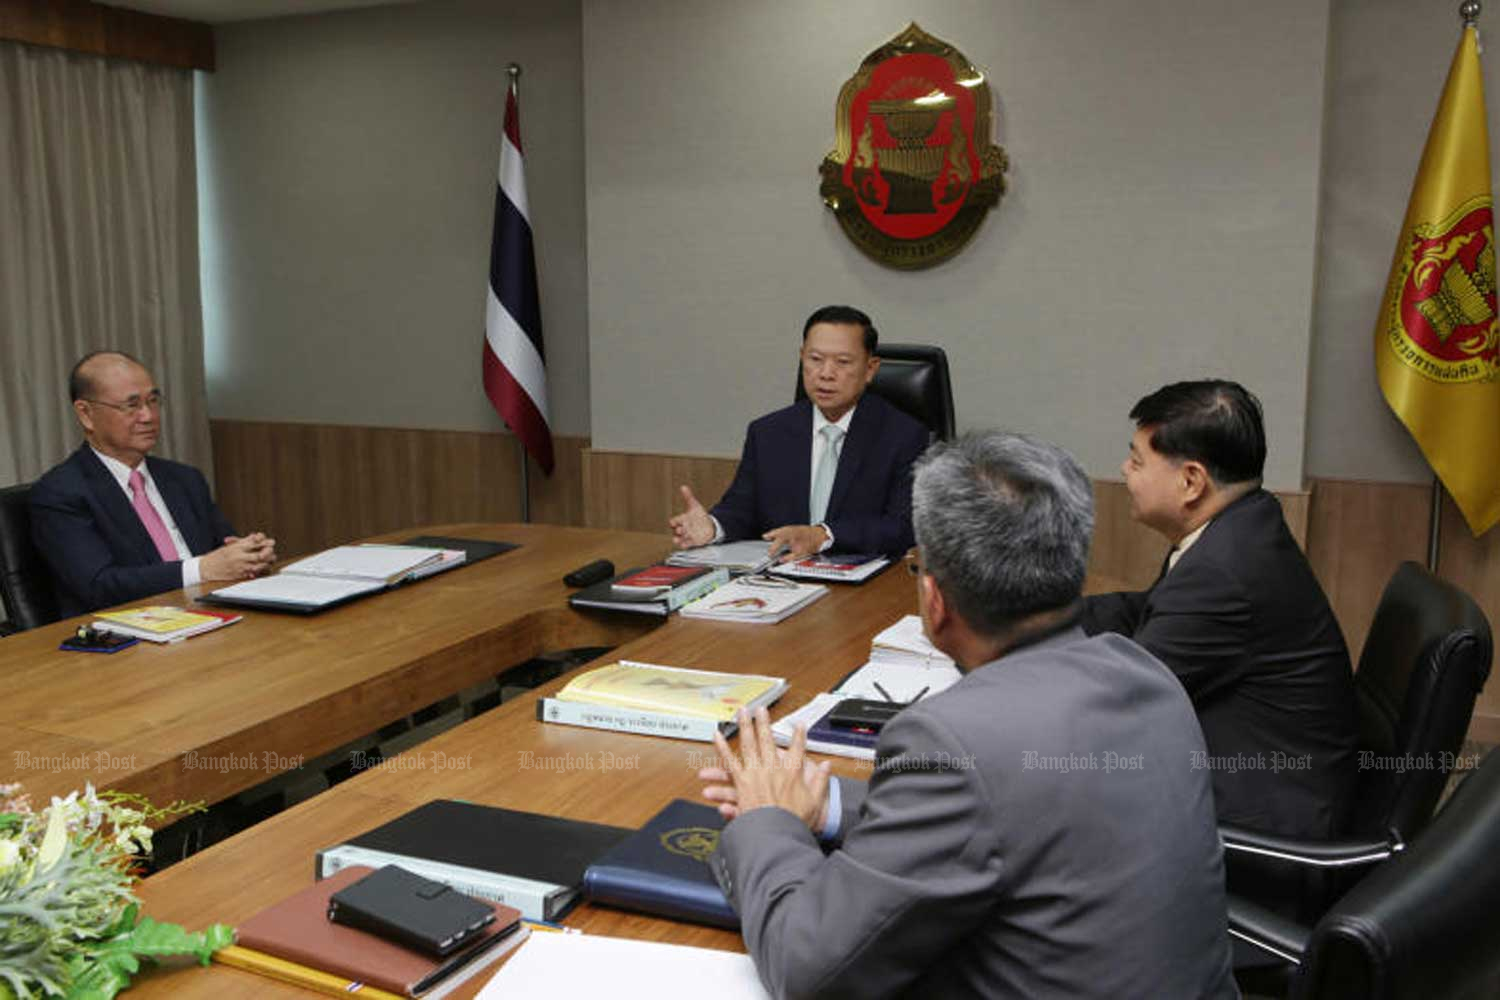 Members of the Ombudsman meet at their office in Bangkok on Tuesday to consider complaints about the cabinet's swearing-in. (Photo by Apichit Jinakul)